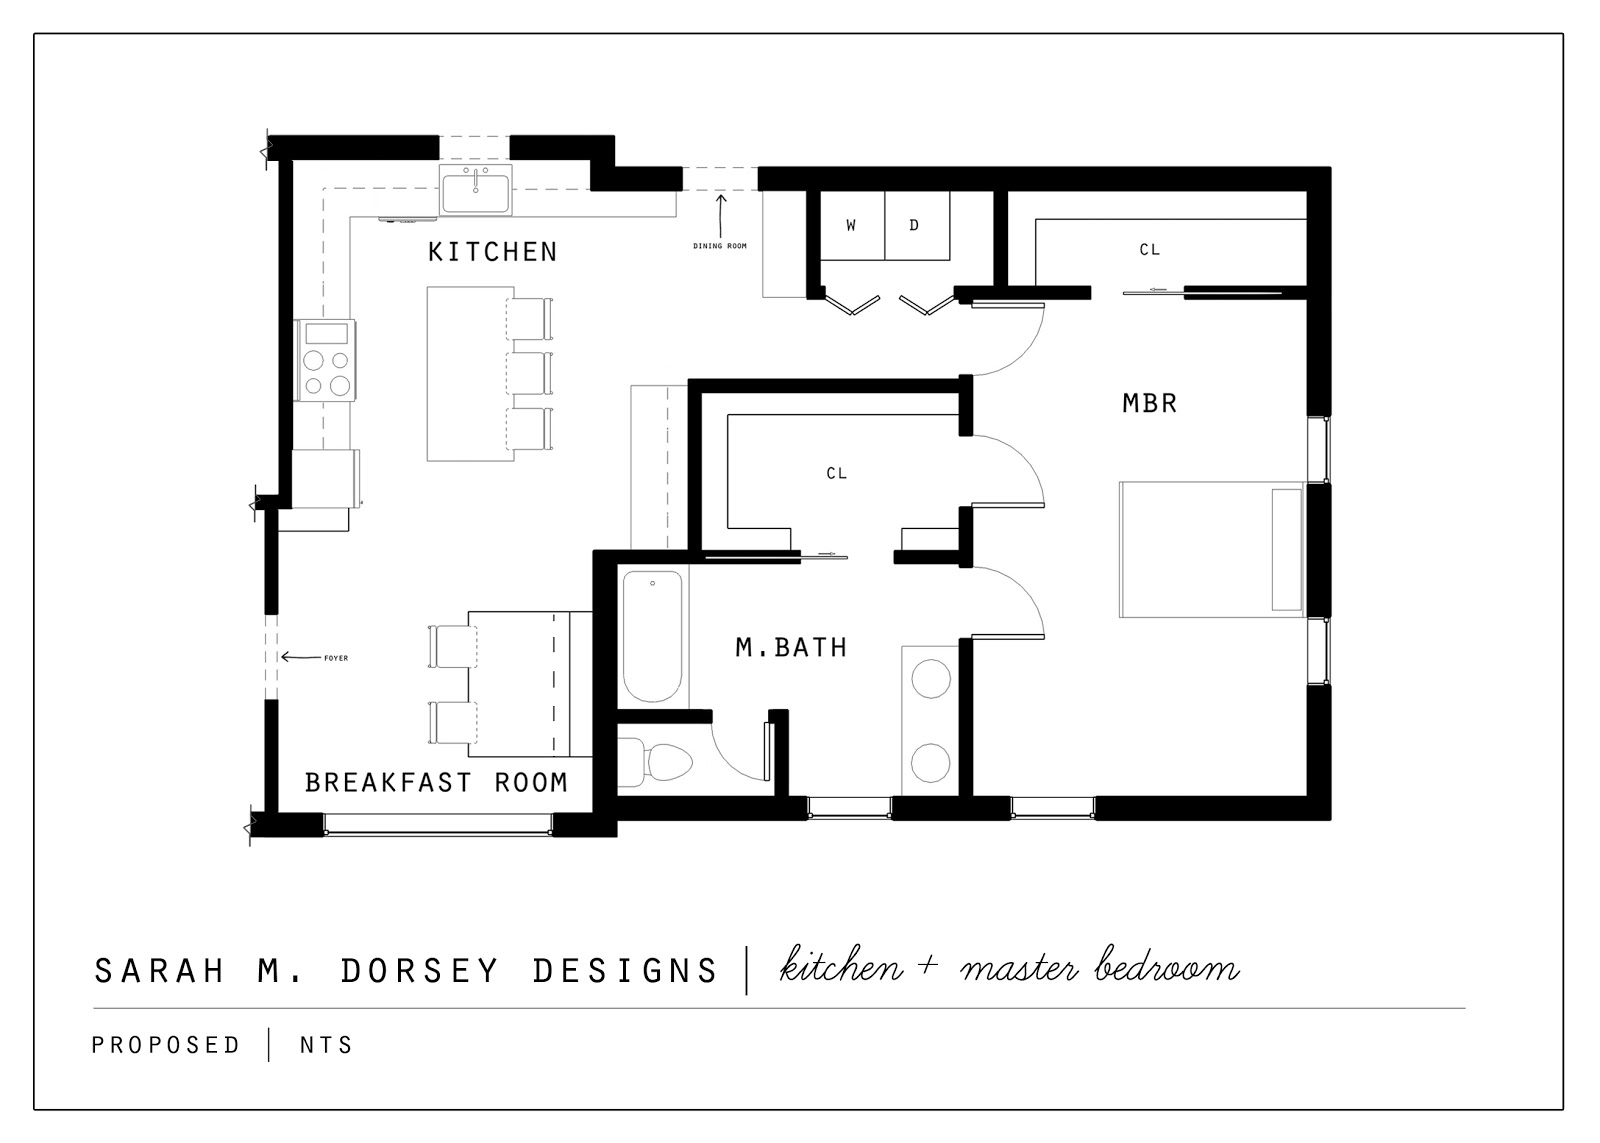 sarah m. dorsey designs: Proposed Kitchen and Master Suite ...